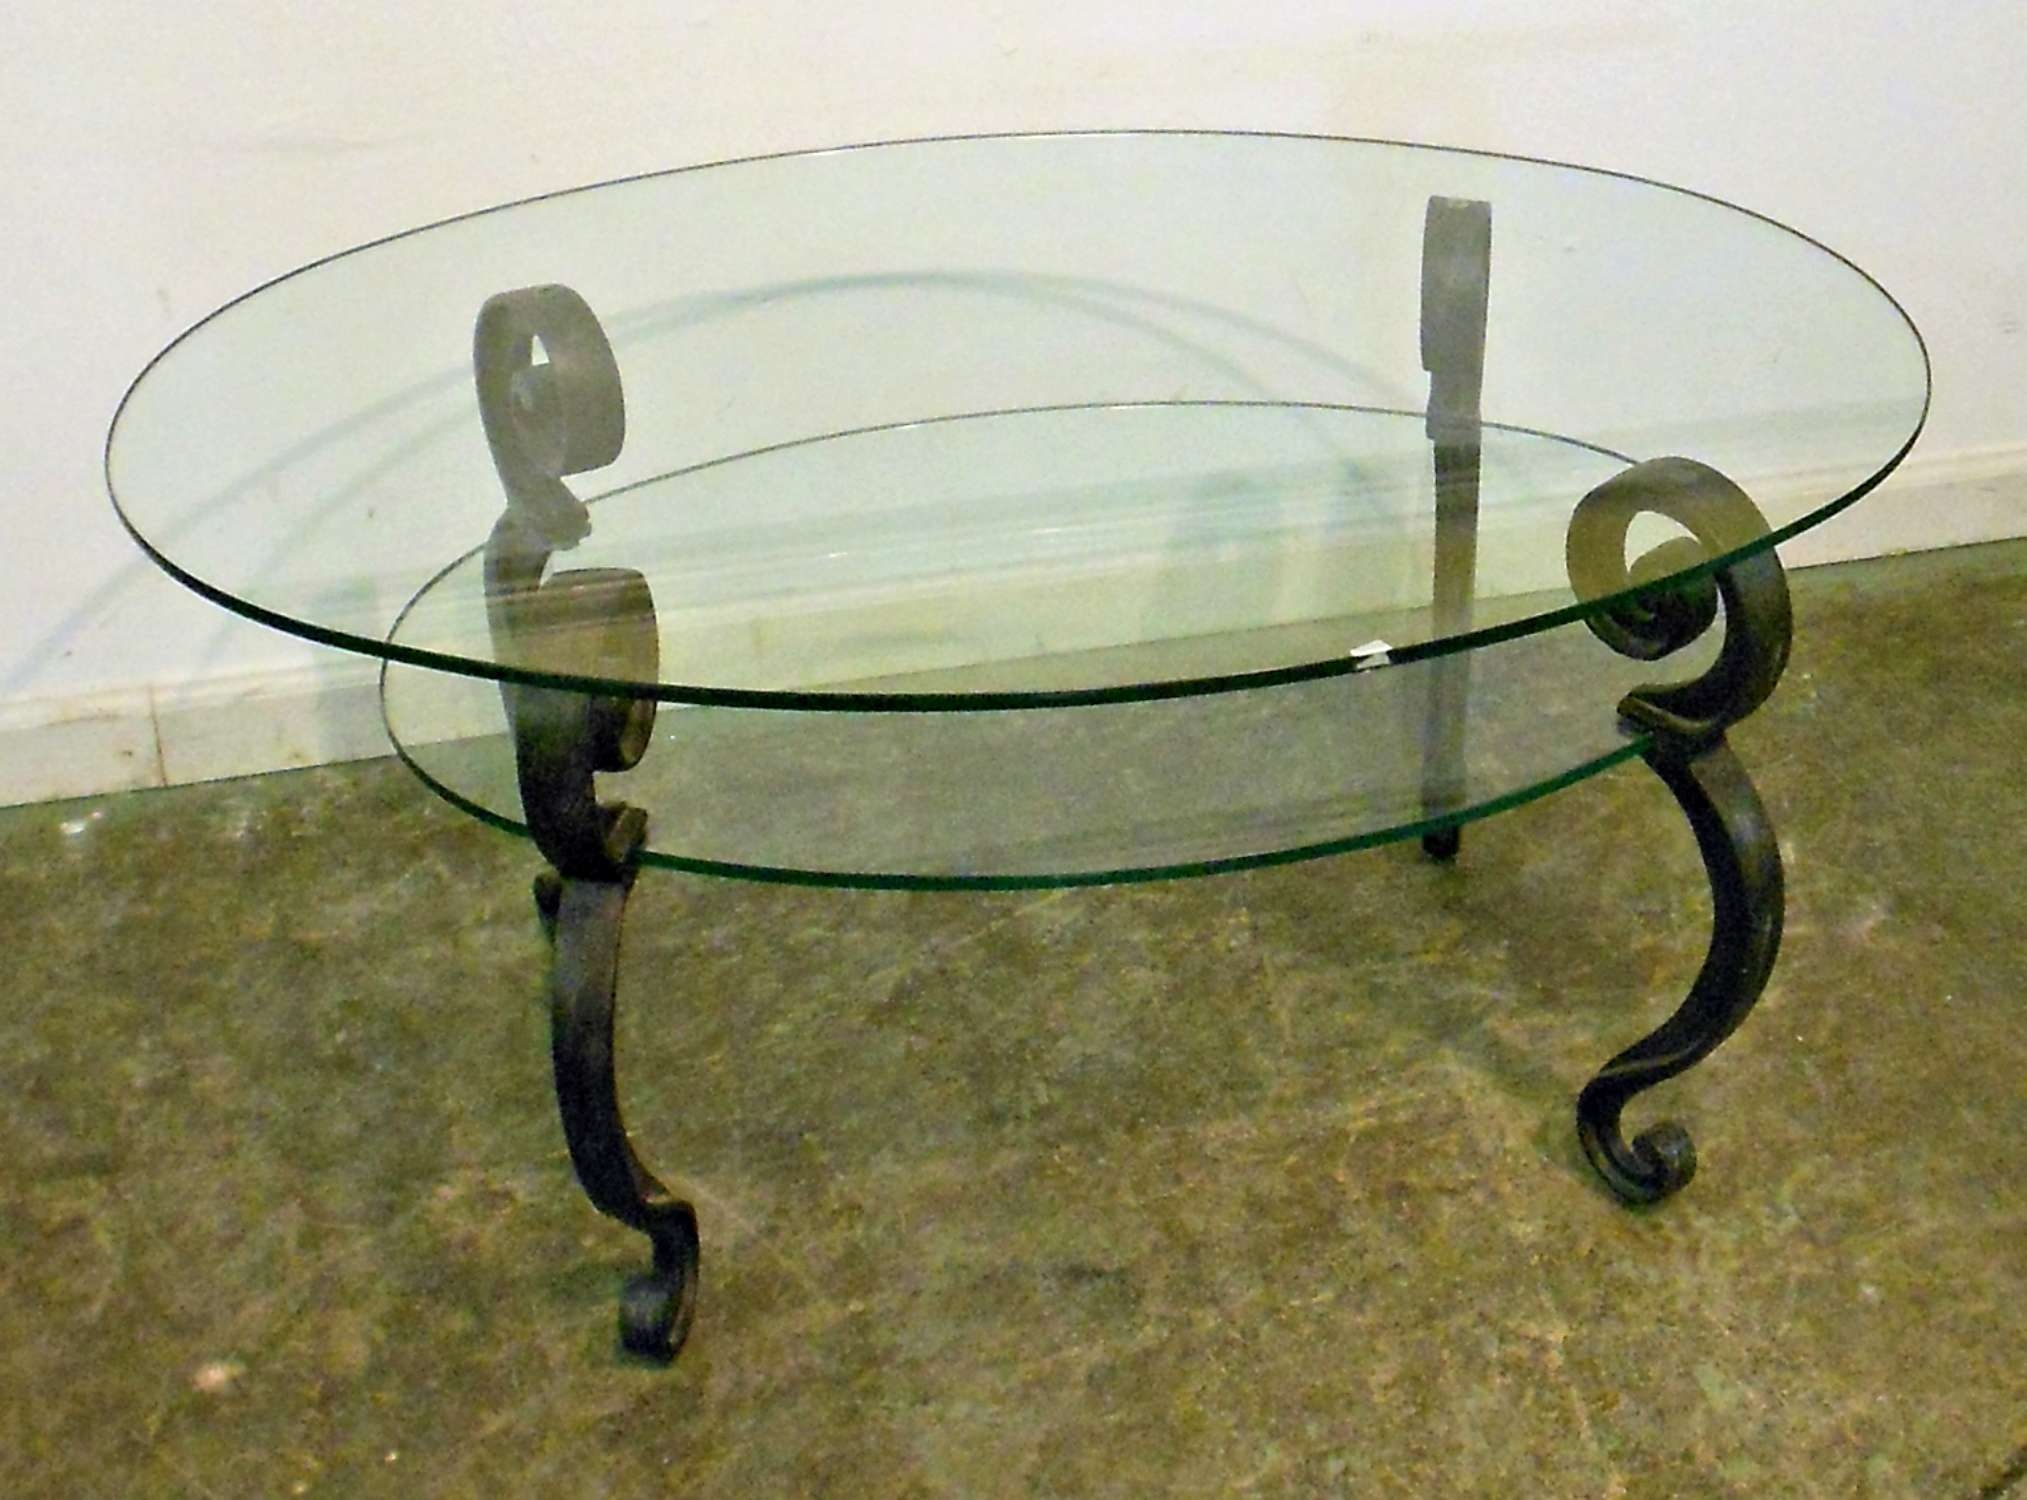 Vintage Glass Top Coffee Table With Black Metal Legs And Shelves Regarding Most Current Antique Glass Coffee Tables (Gallery 16 of 20)